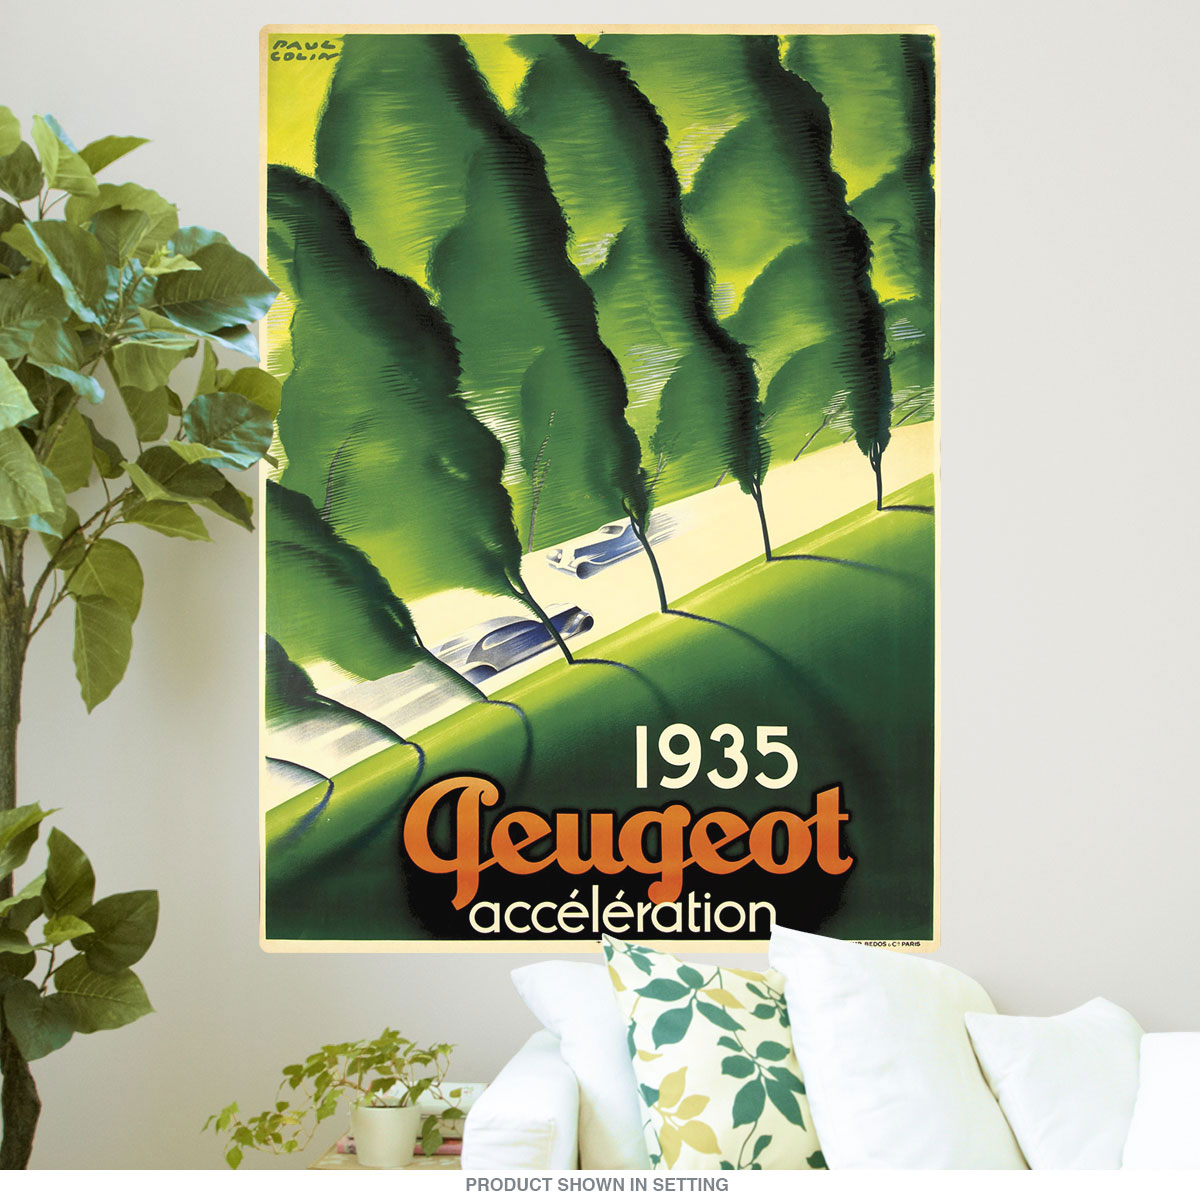 1935 Peugeot Acceleration Car Wall Decal